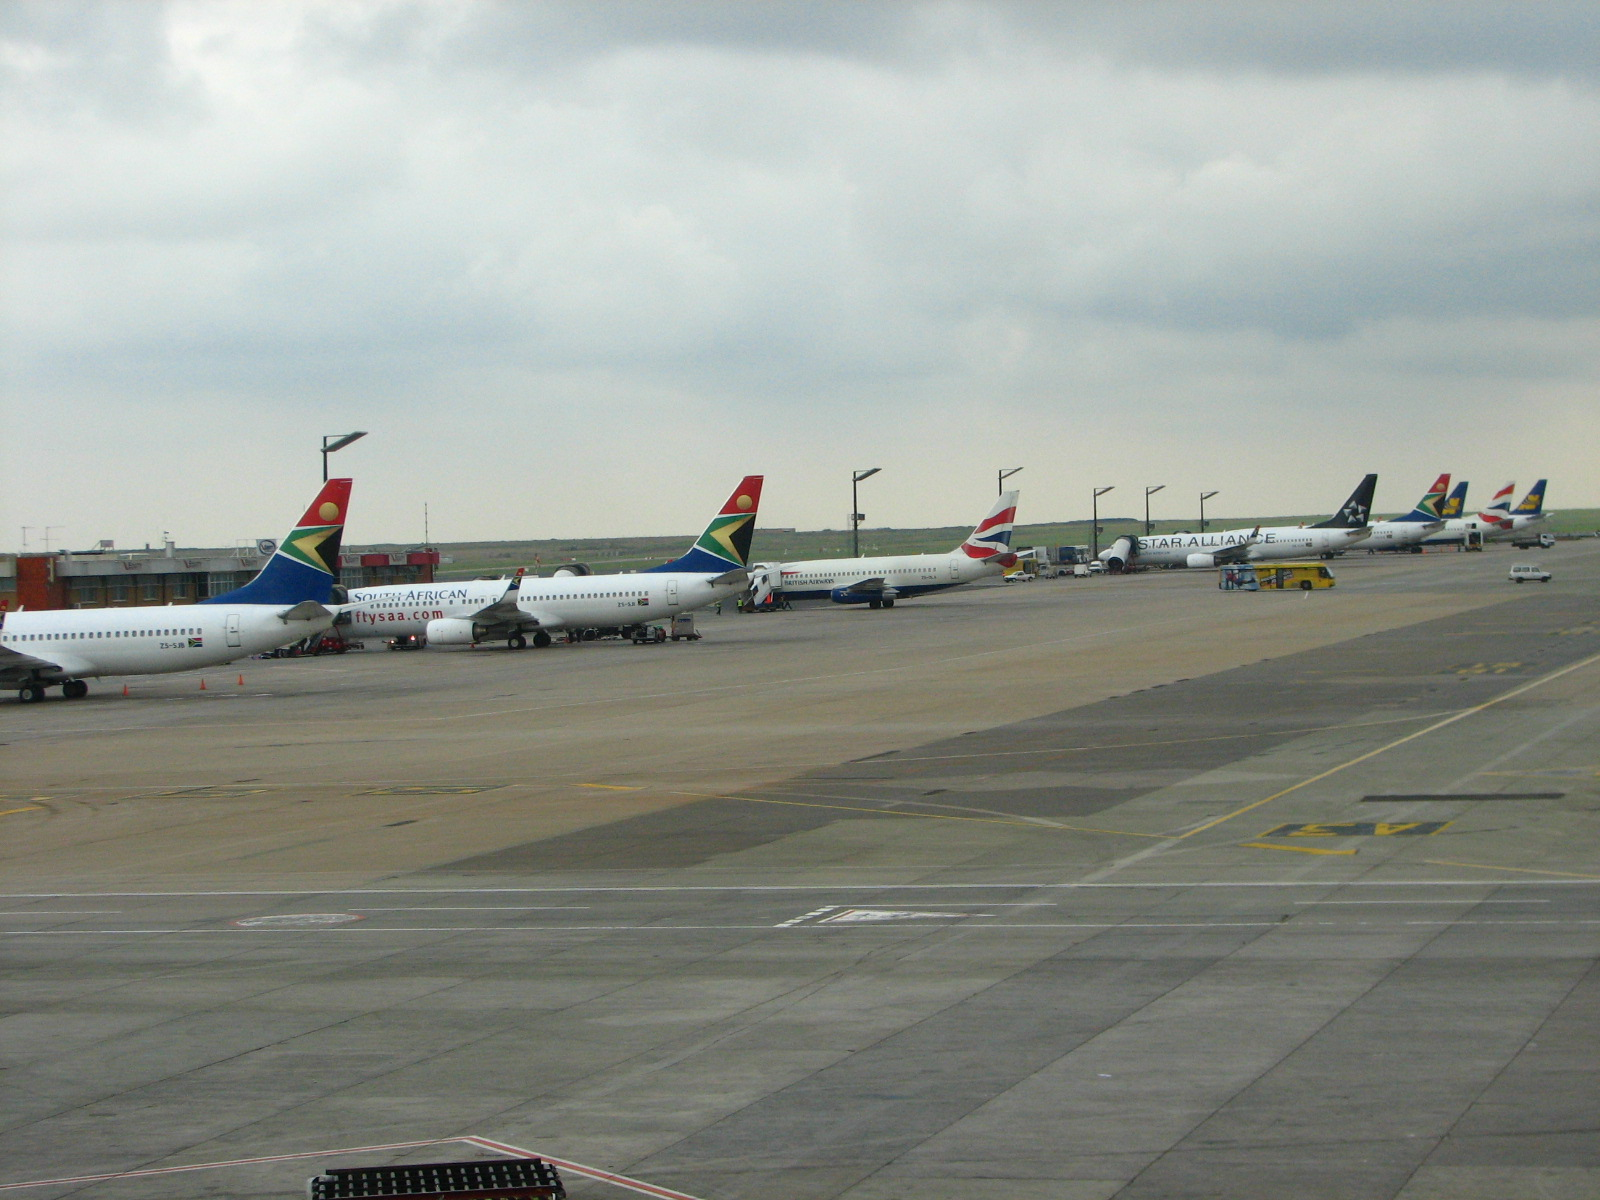 Johannesburg Airport O.R.Tambo (Johannesburg OR Tambo International Airport) .2